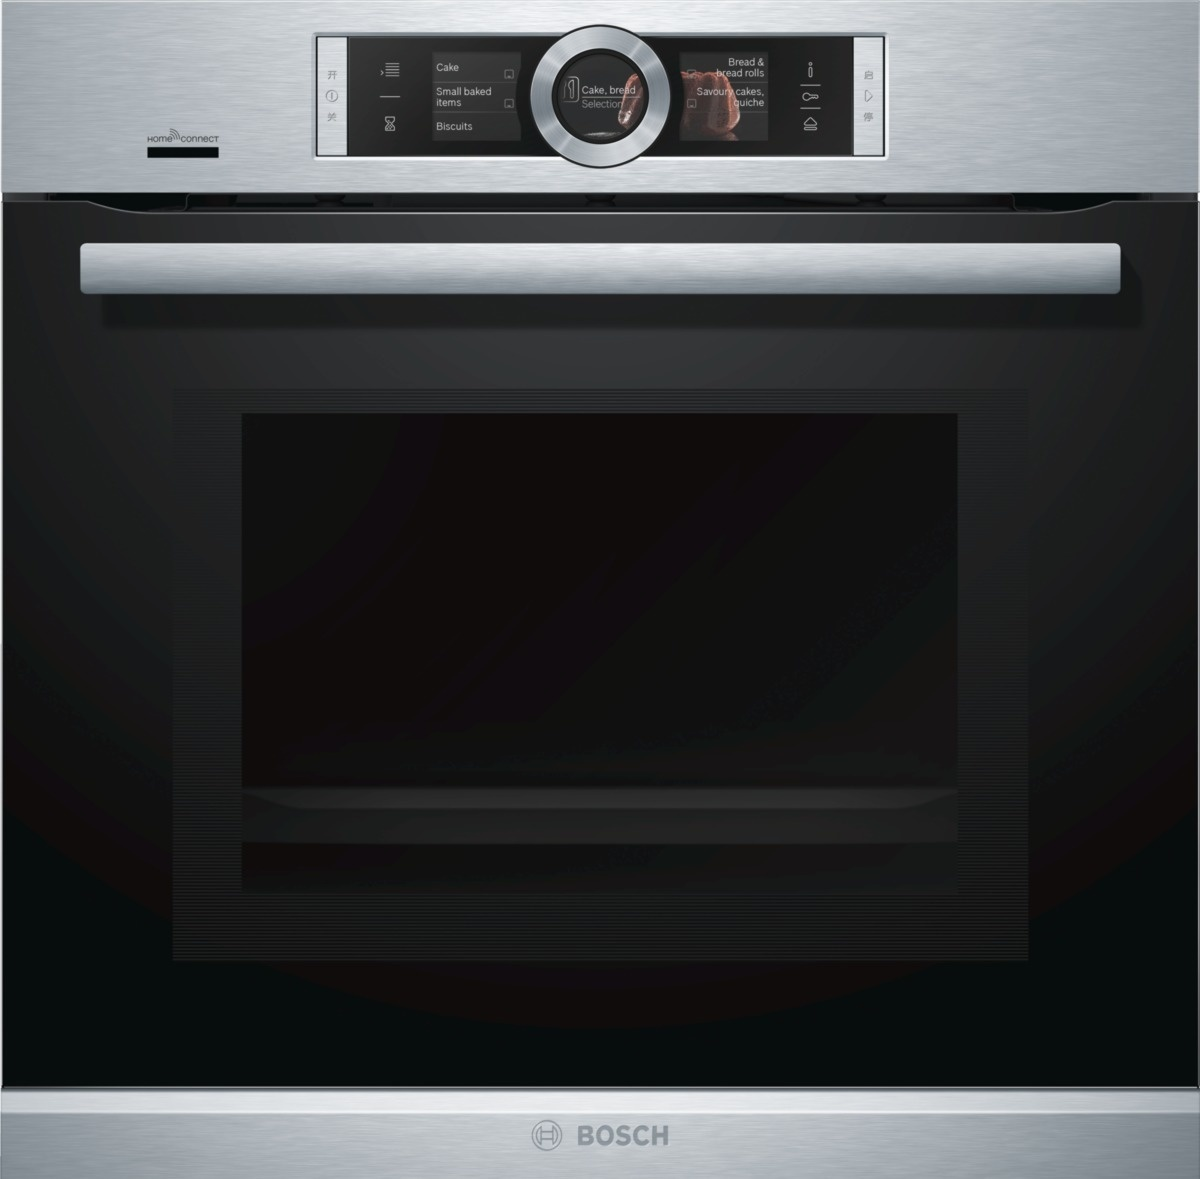 Connected Oven